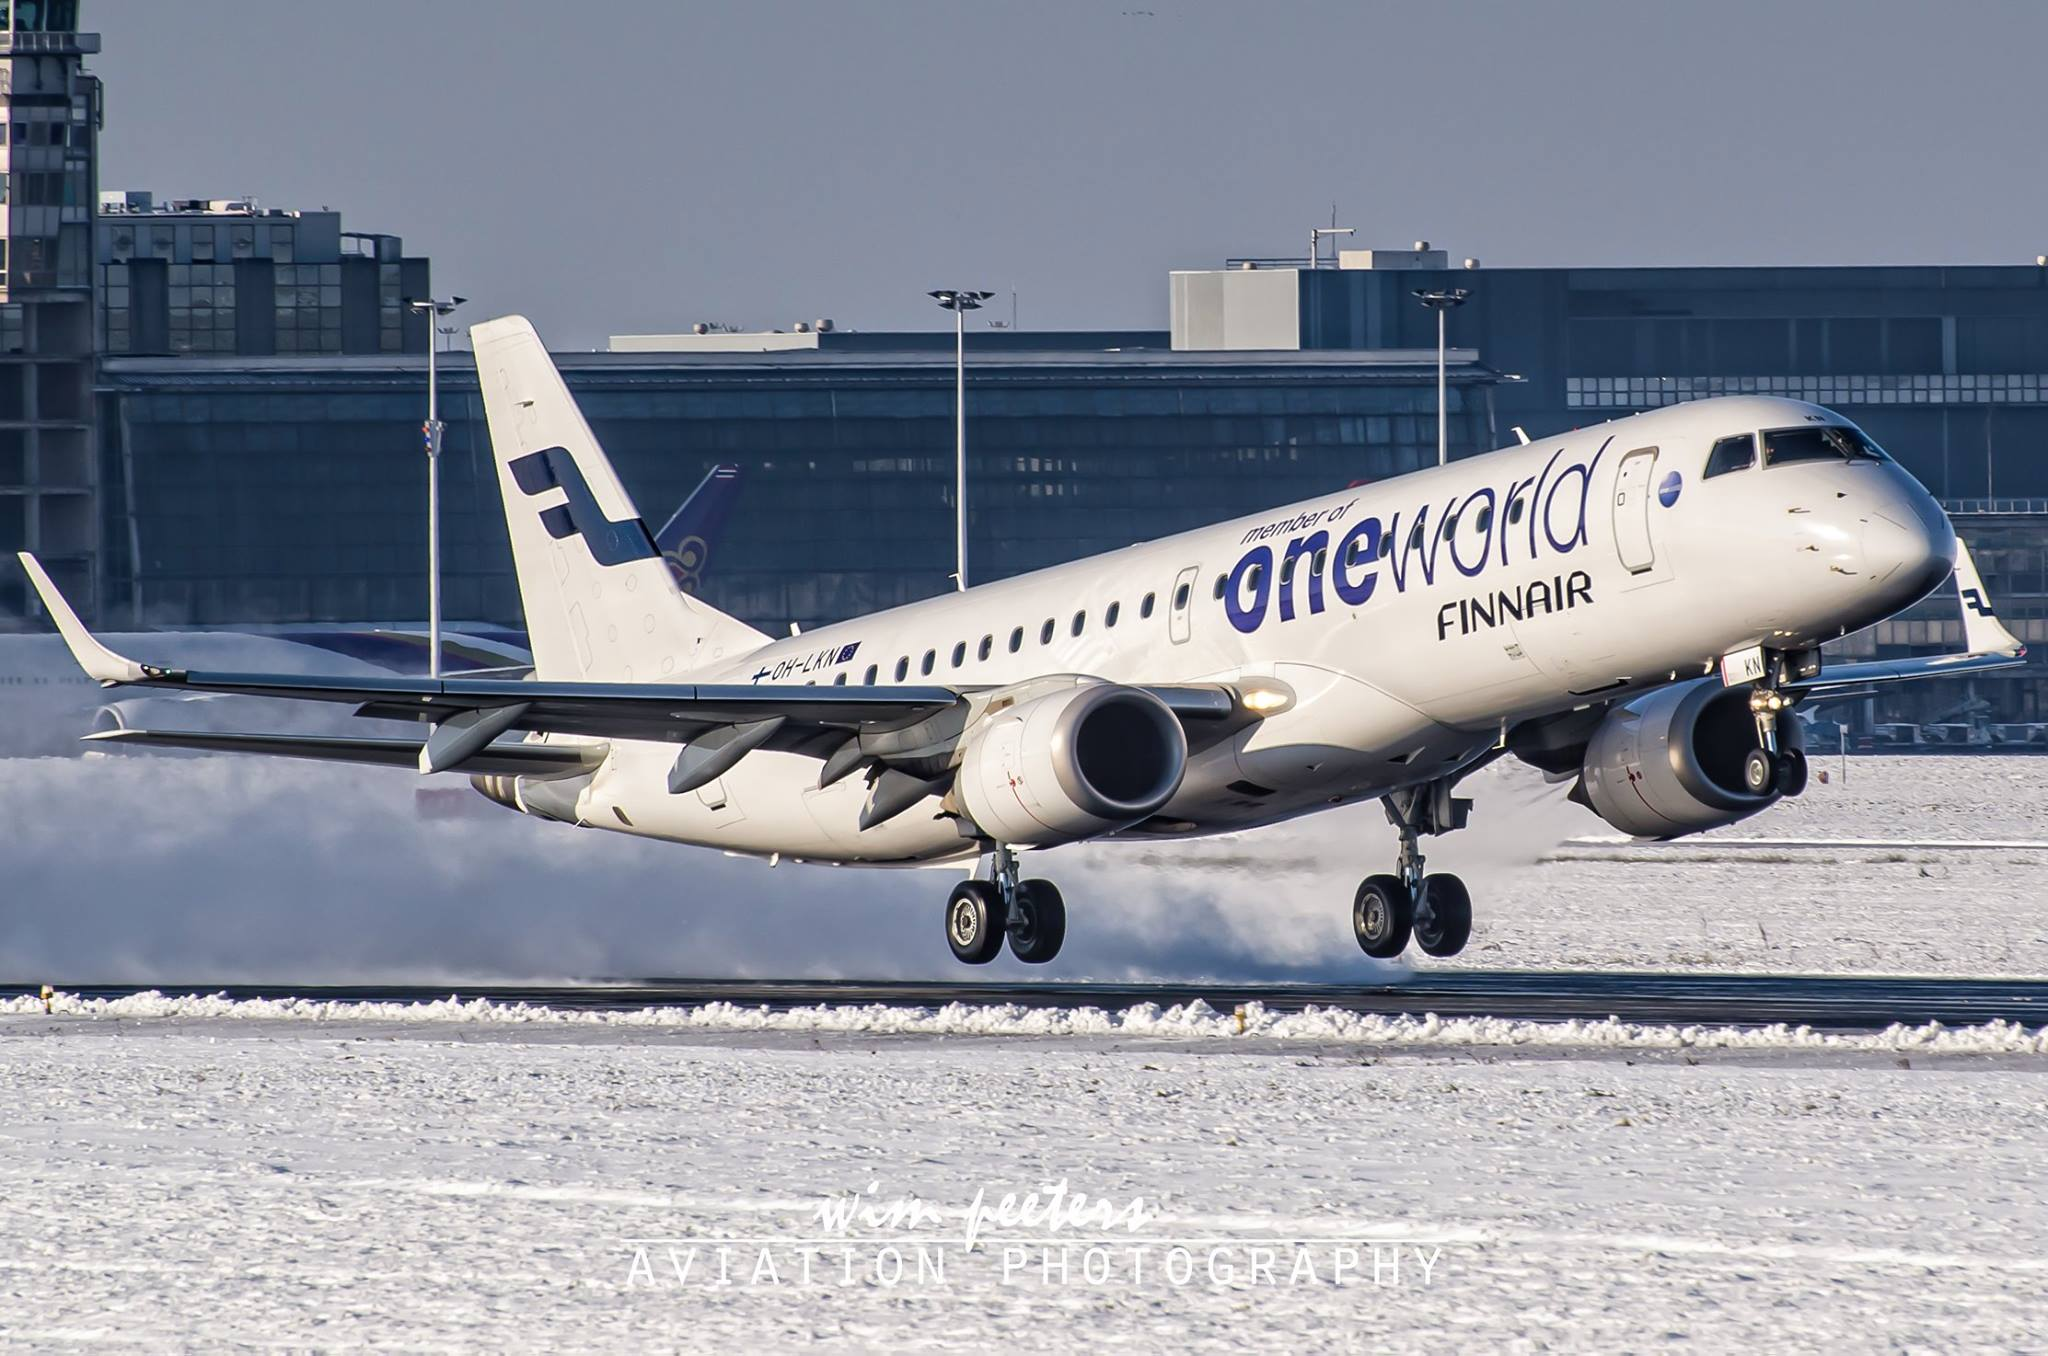 Finnair 'oneworld' Embraer 190 - copyright Wim Peeters